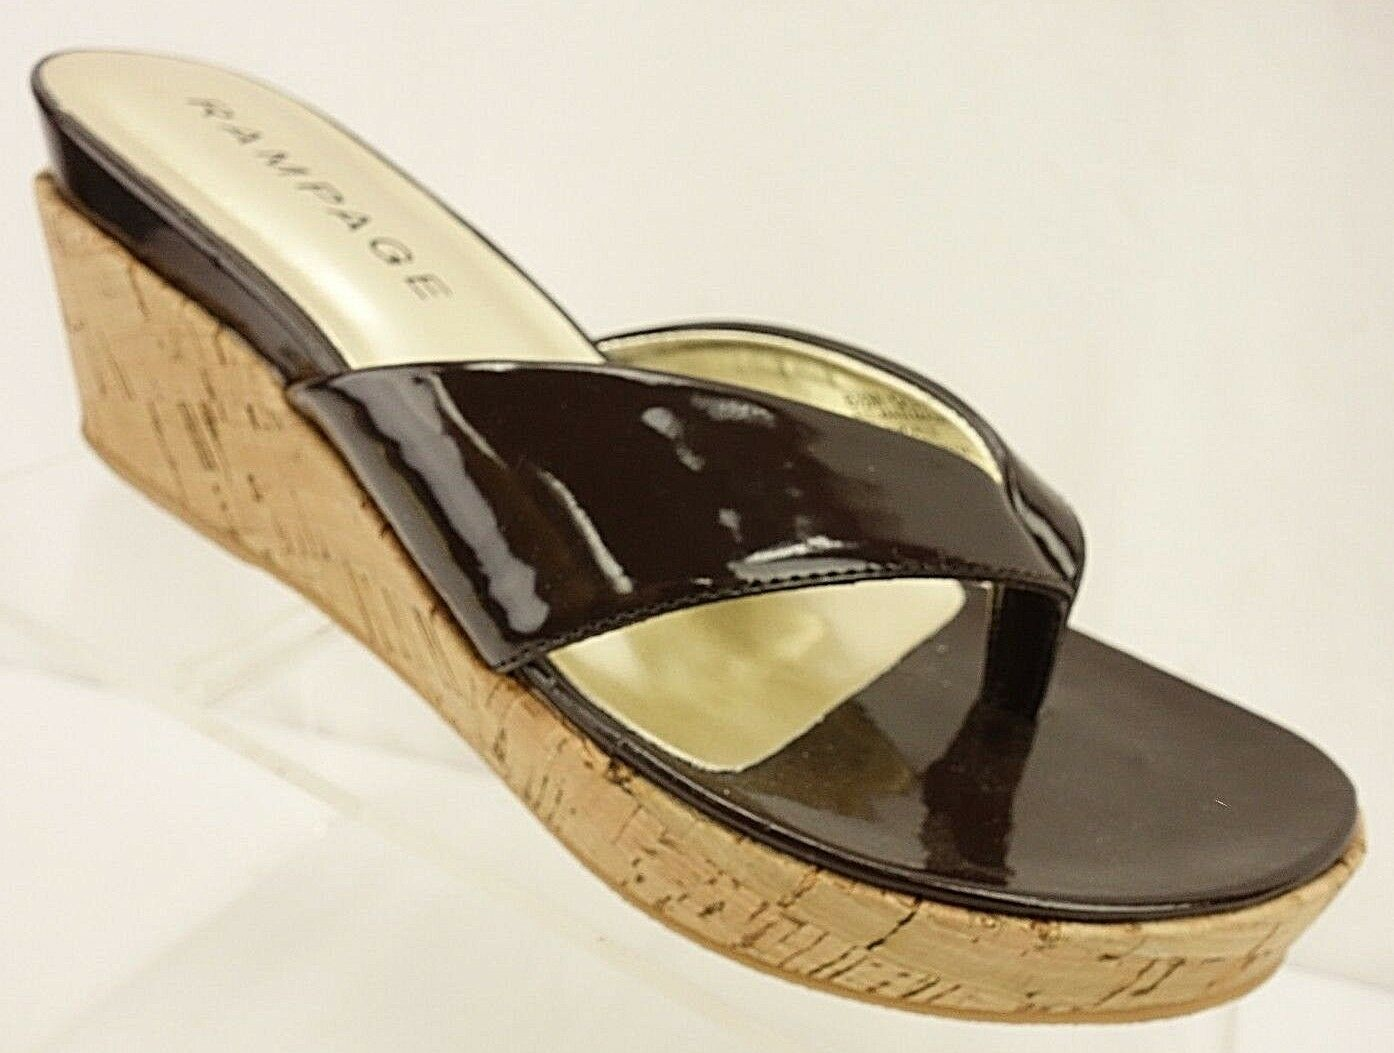 NEW Patent RAMPAGE QUINN Thong Wedges Women's 8.5 M Brown Patent NEW Cork Shoes 3